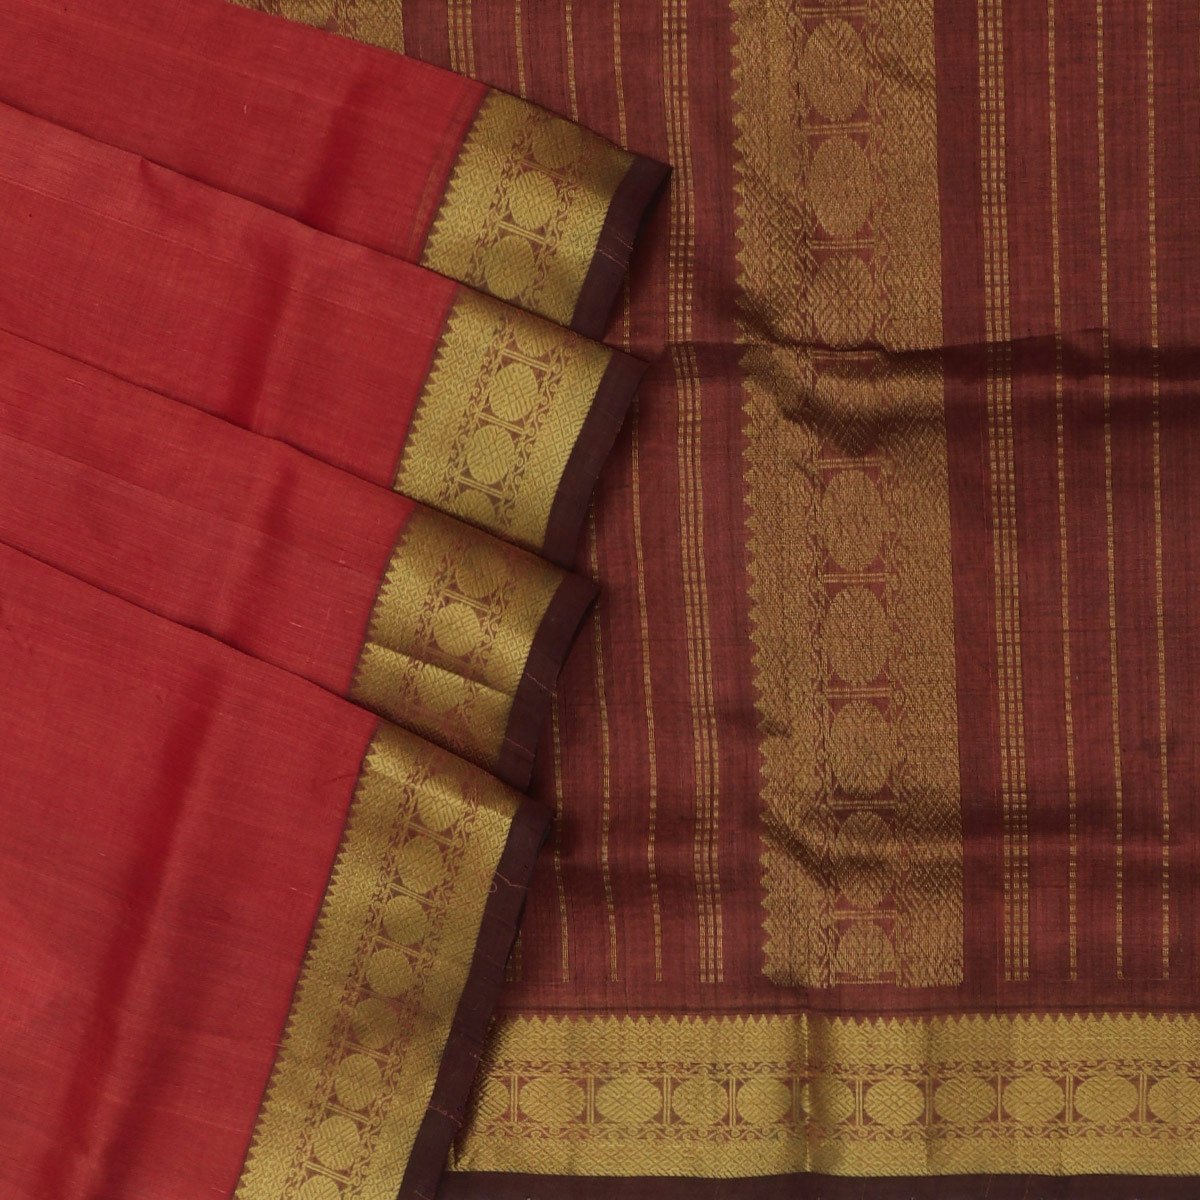 Silk Cotton Saree : Light Red with Coin Zari Border